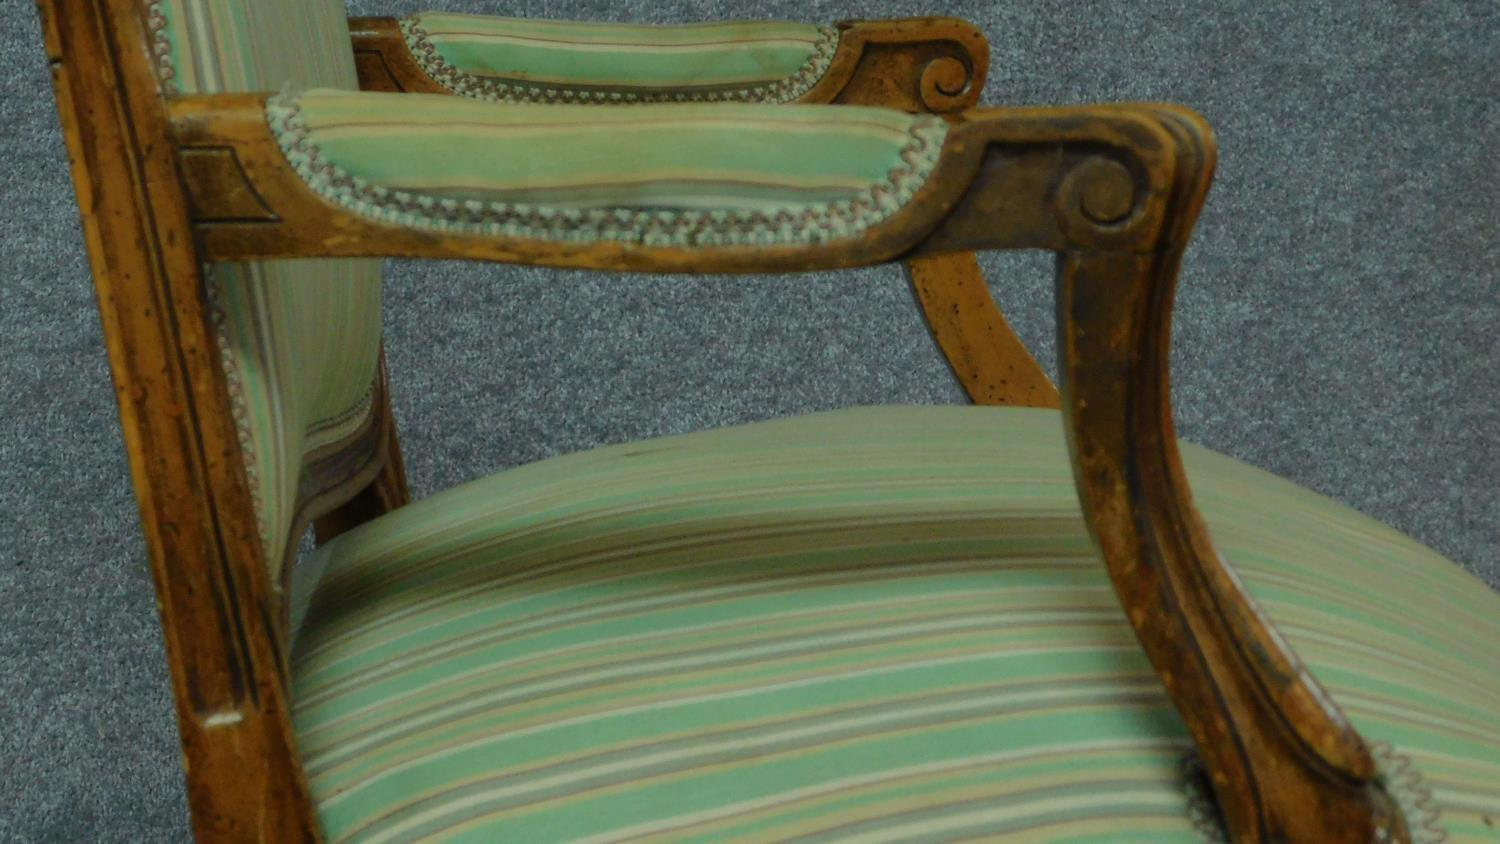 Lot 14 - A Victorian walnut armchair with floral carved details and green striped upholstery, raised on